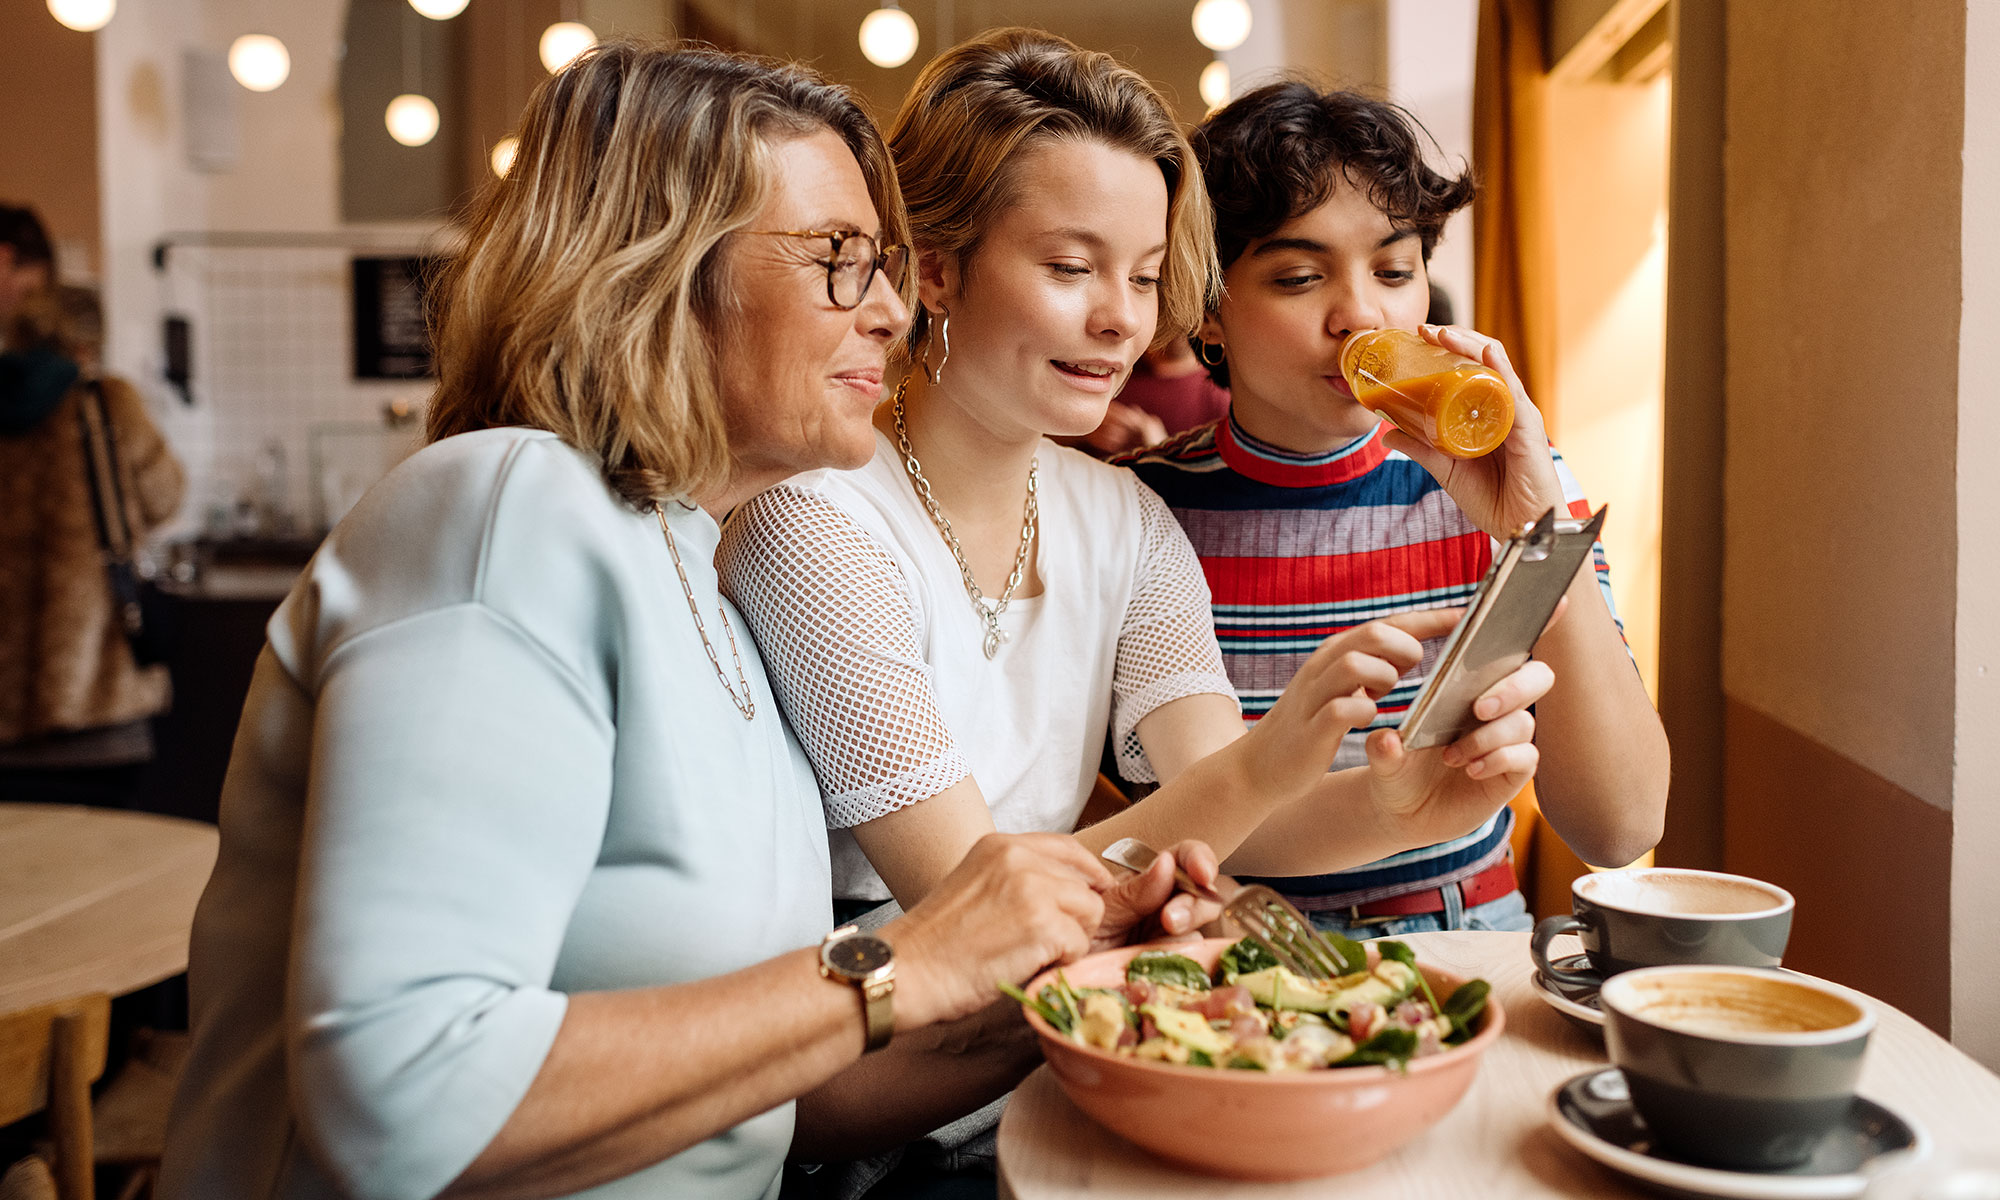 Three women having lunch and looking at a smart phone.